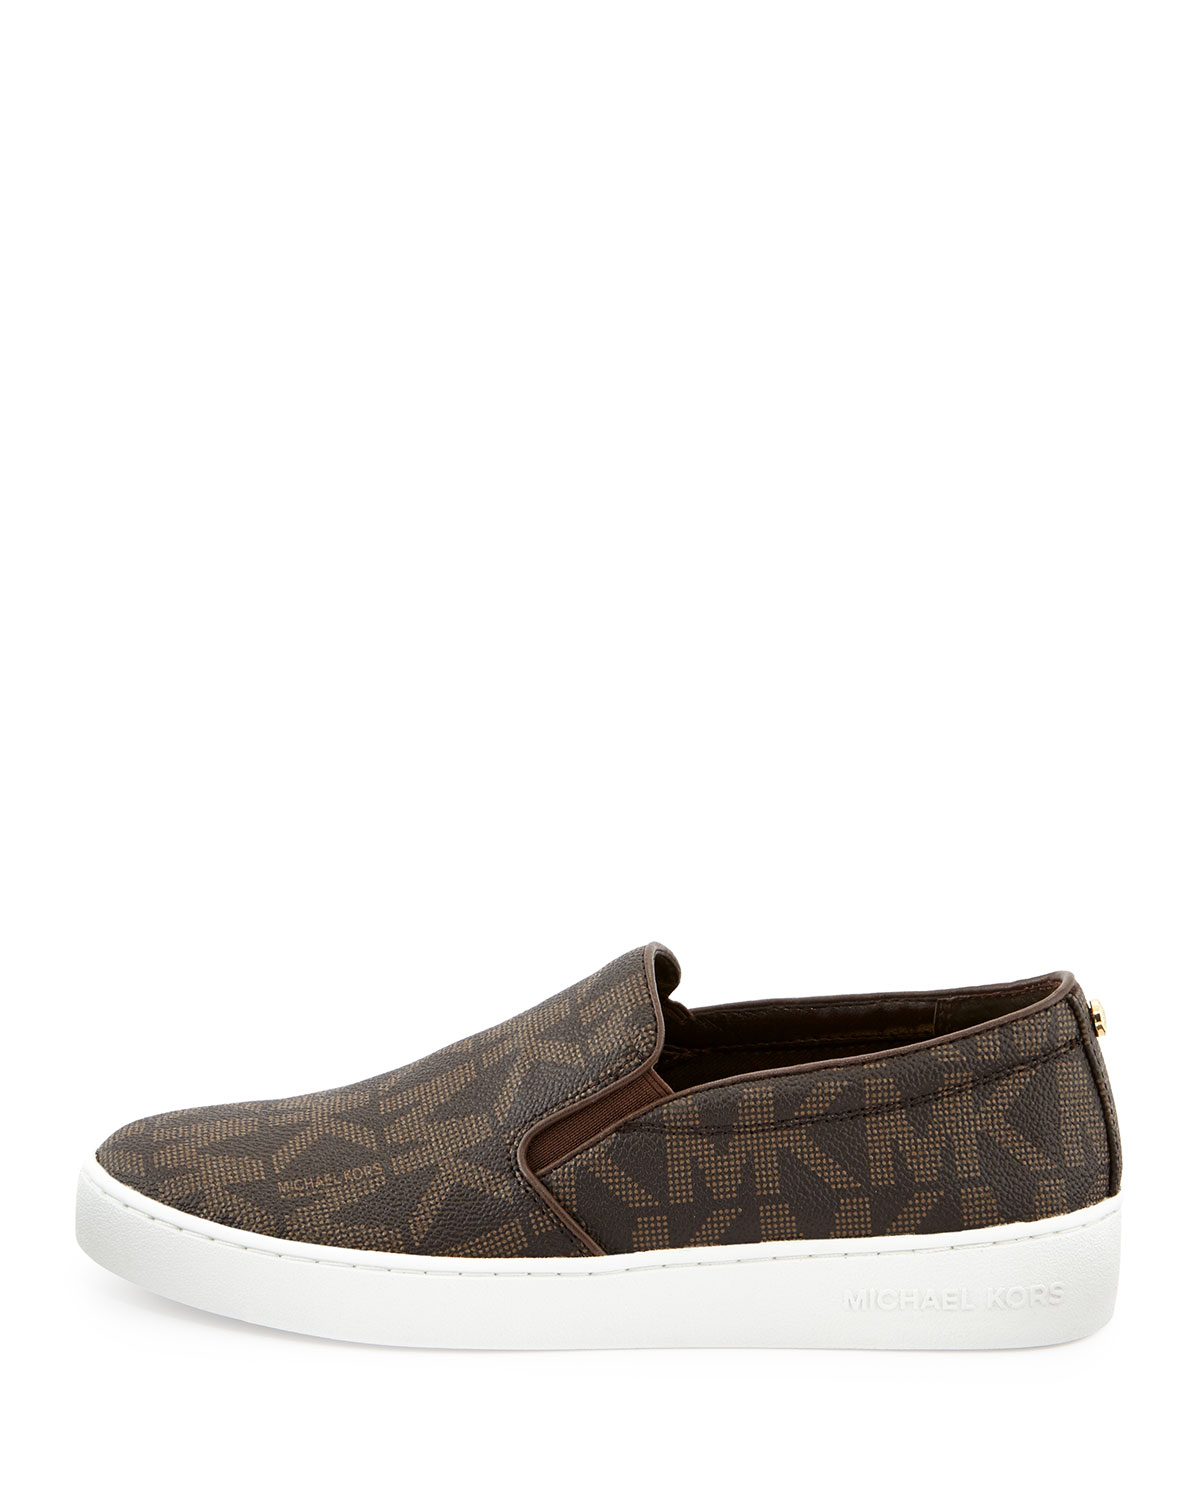 michael michael kors brown keaton slip on sneaker product 1 21033856 1. Black Bedroom Furniture Sets. Home Design Ideas